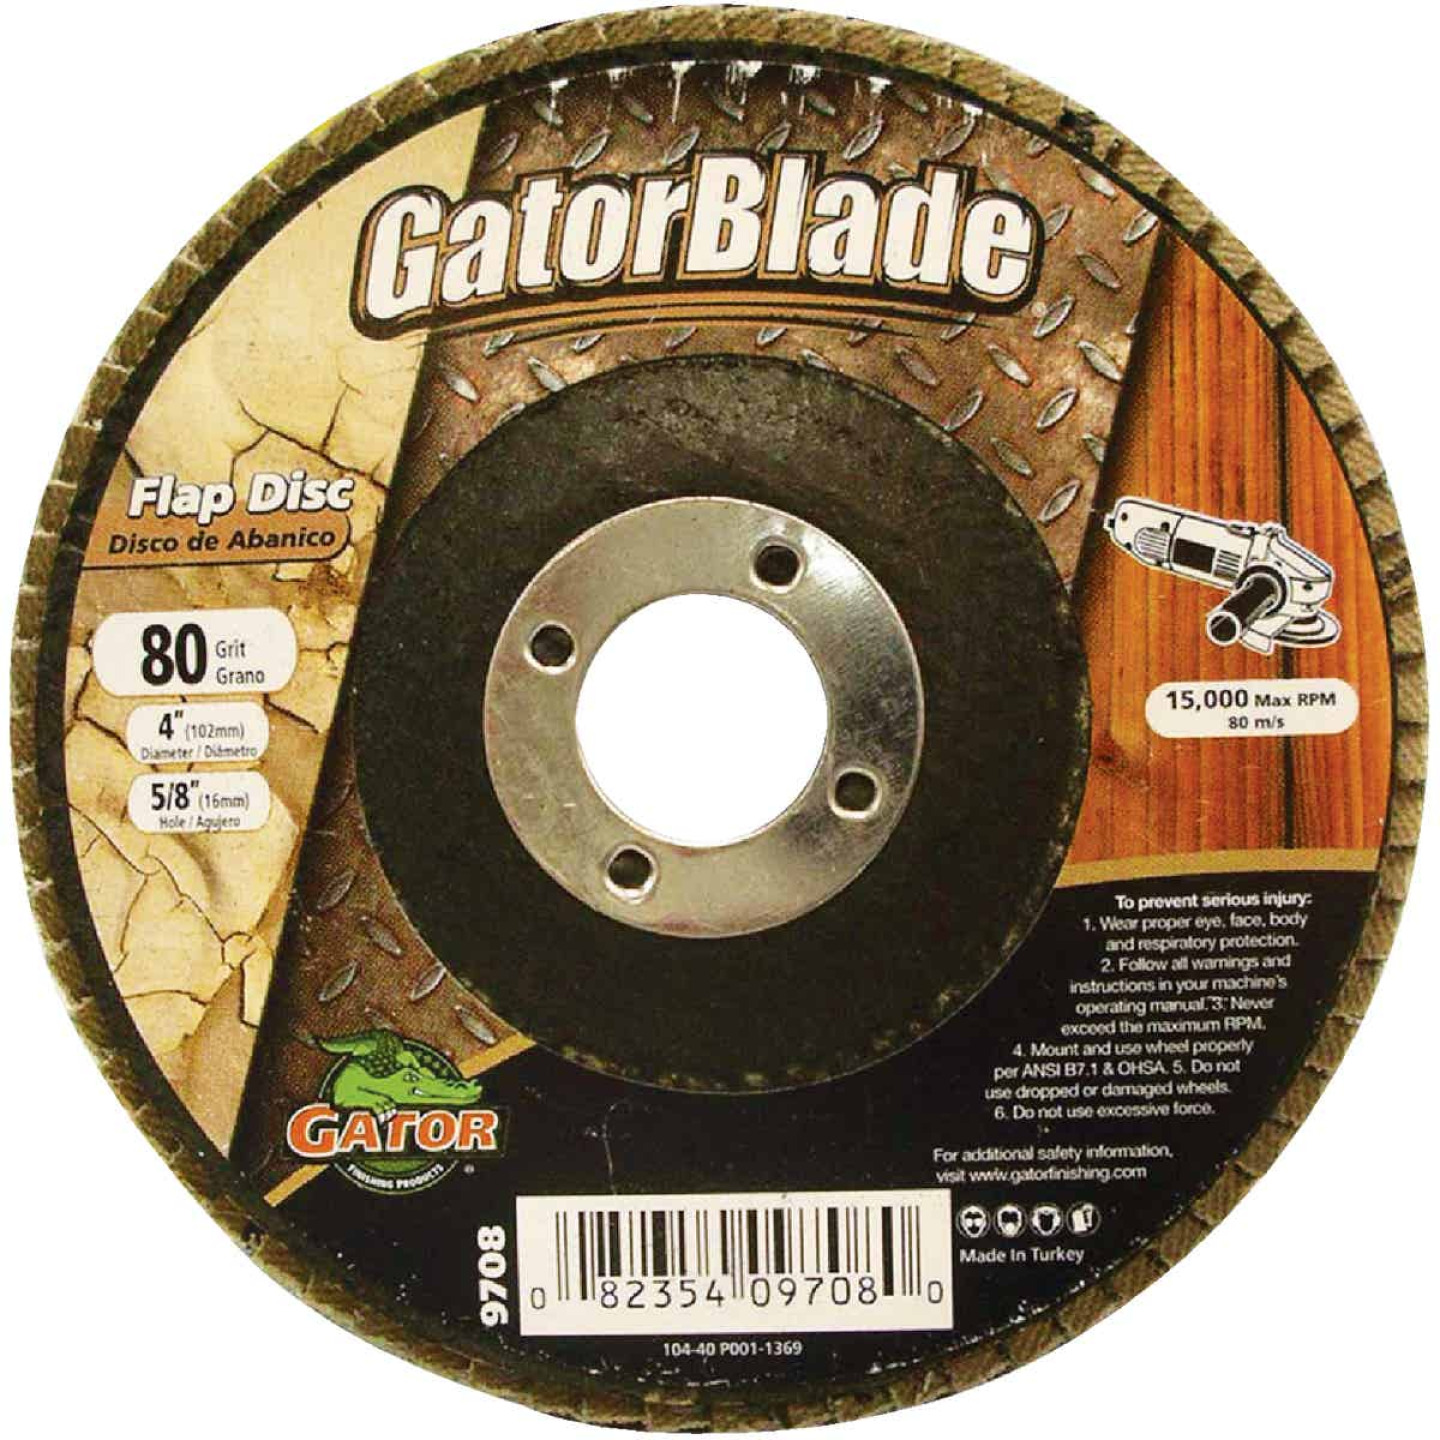 Gator Blade 4 In. x 5/8 In. 80-Grit Type 29 Angle Grinder Flap Disc Image 1